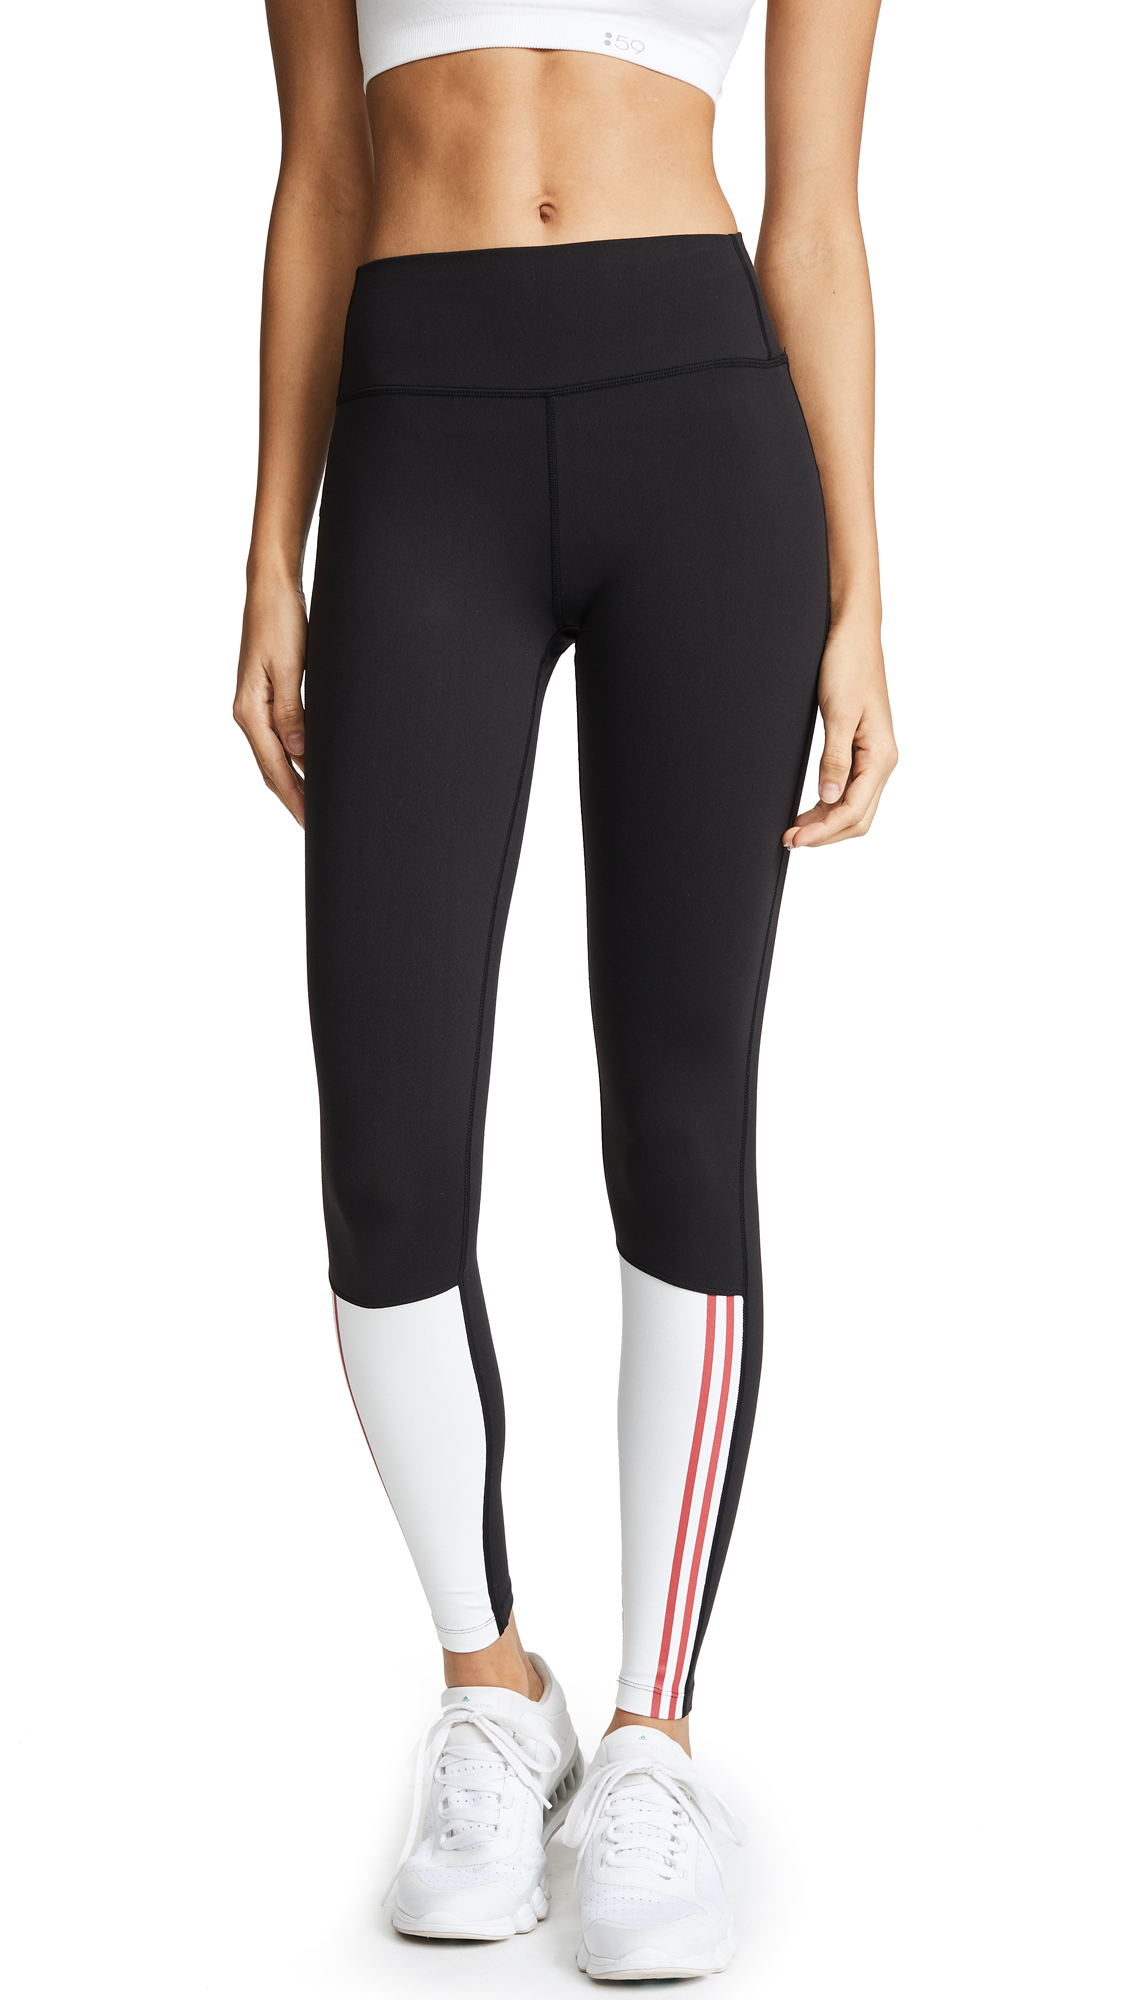 DOUBLE PLAY TIGHT LEGGINGS